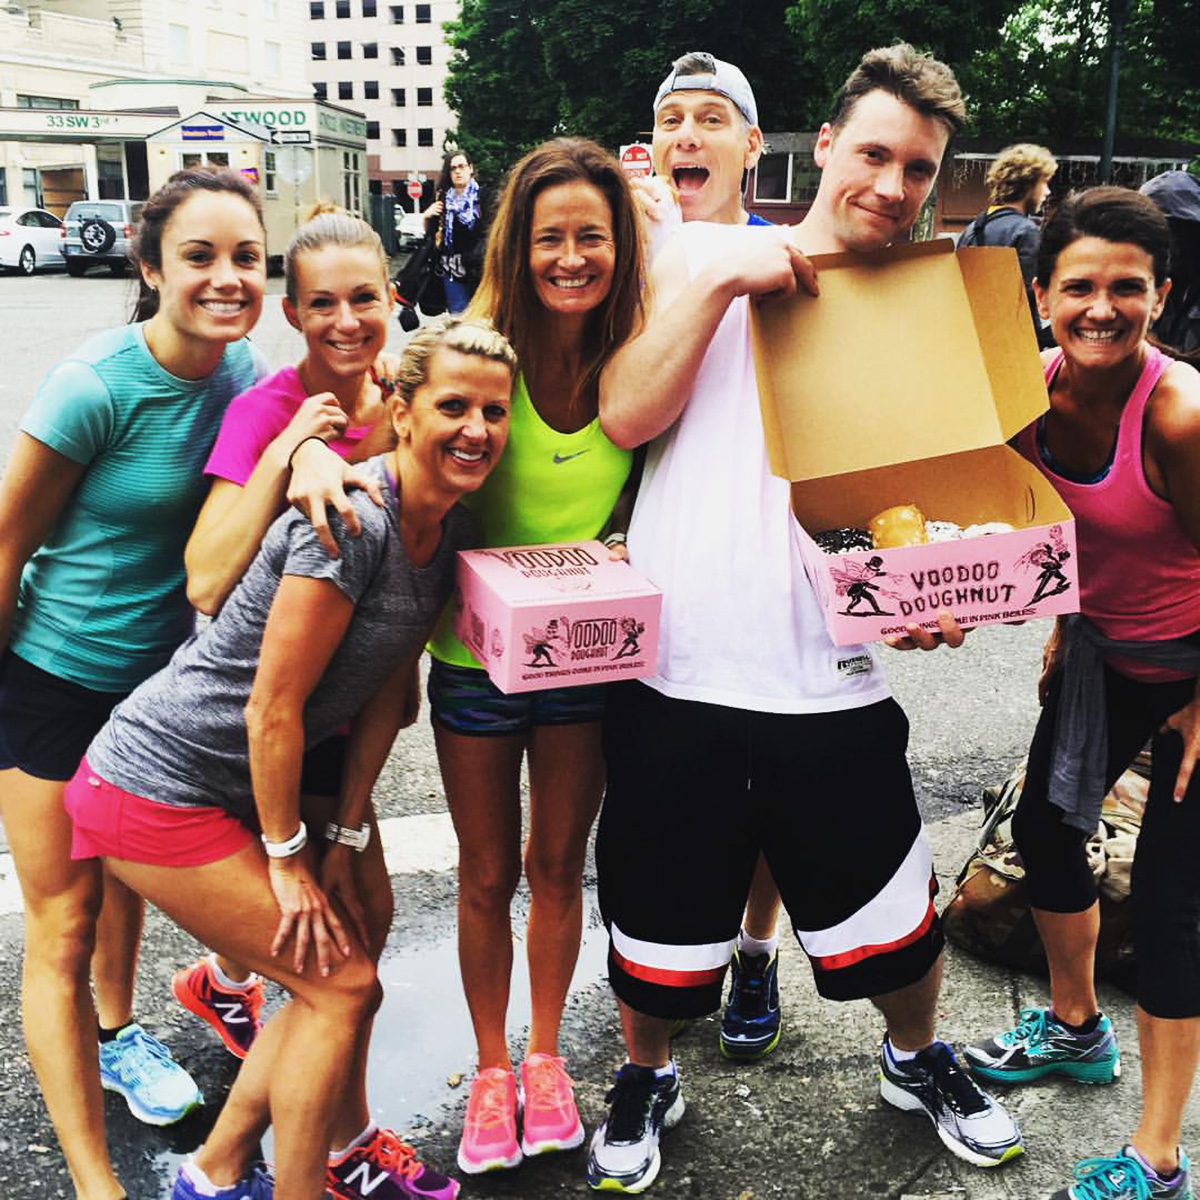 Running-and-eating-donuts-copy.jpg